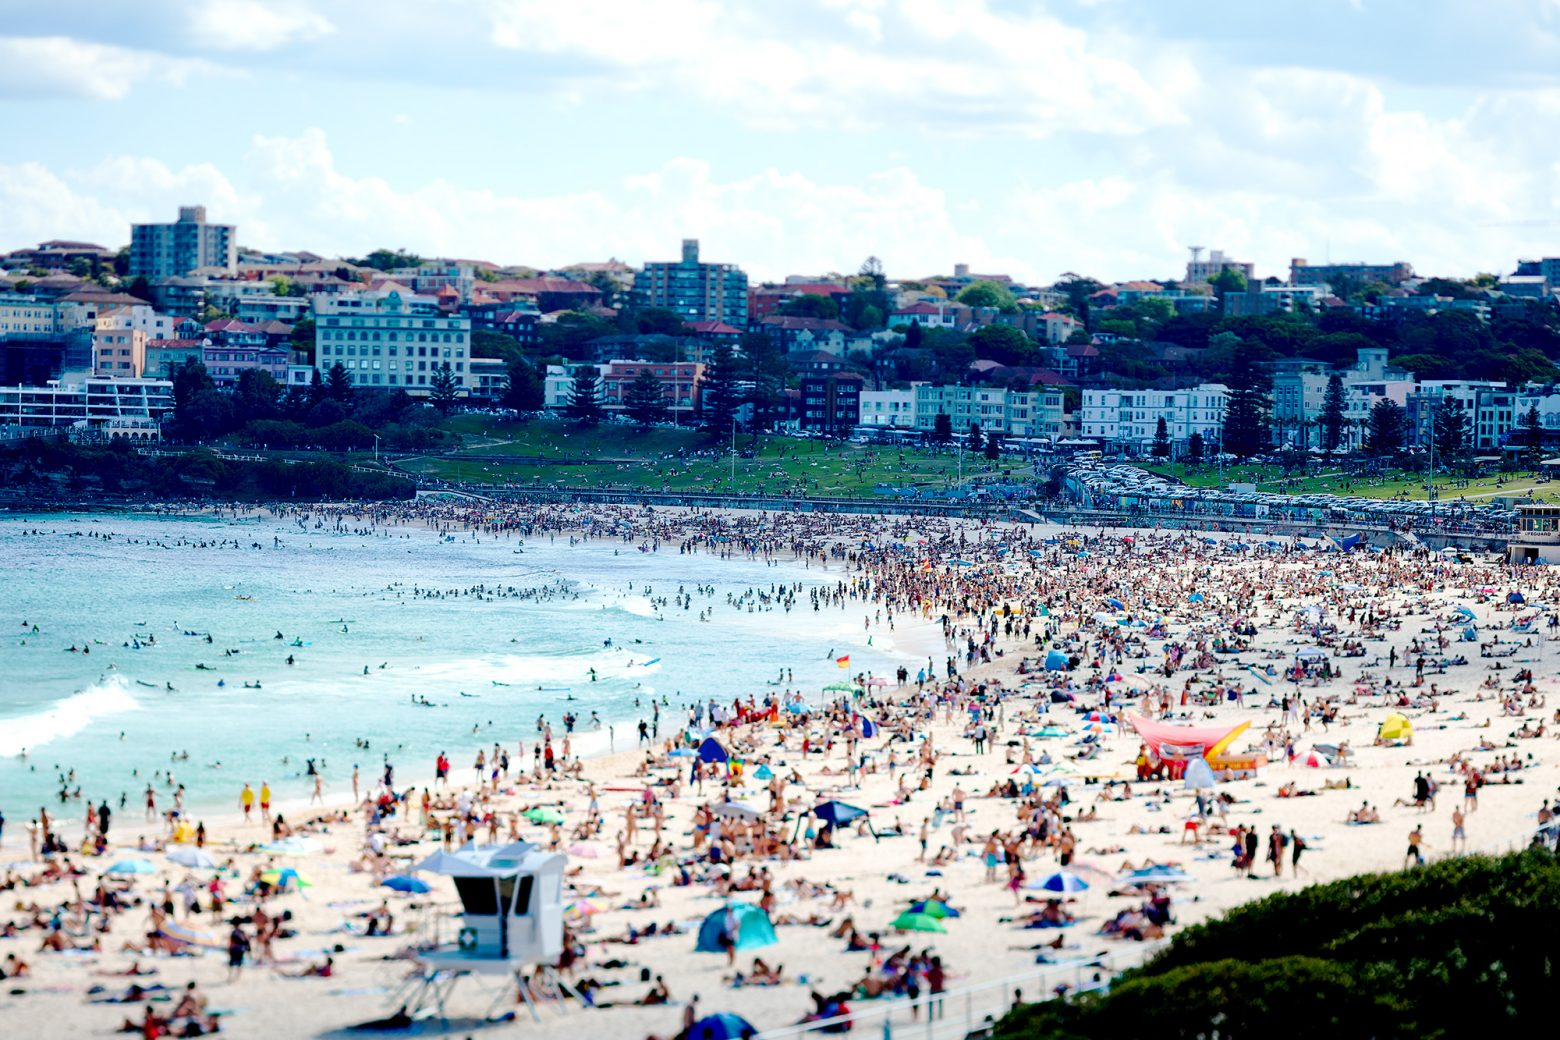 Yesterday, Bondi as a full house